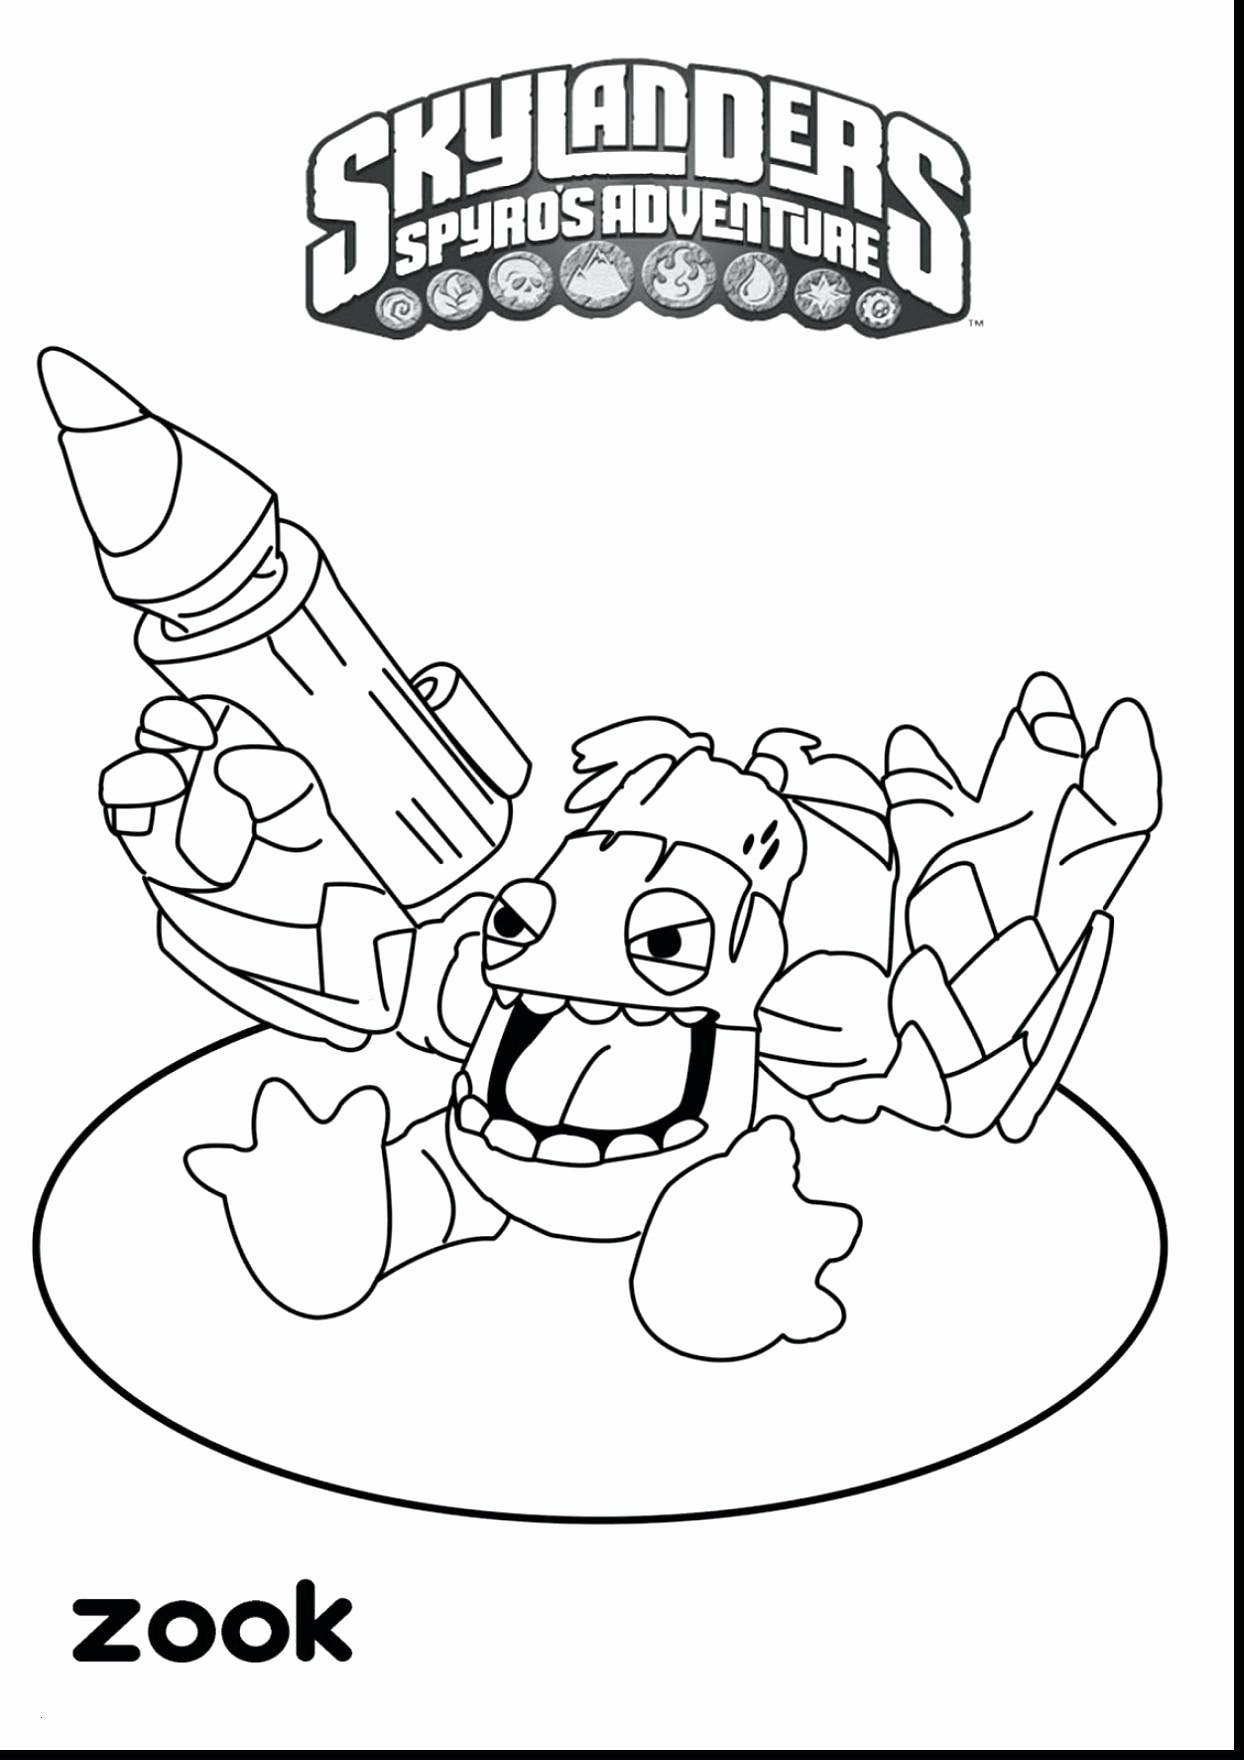 Cake Coloring Pages  to Print 4k - Free For Children